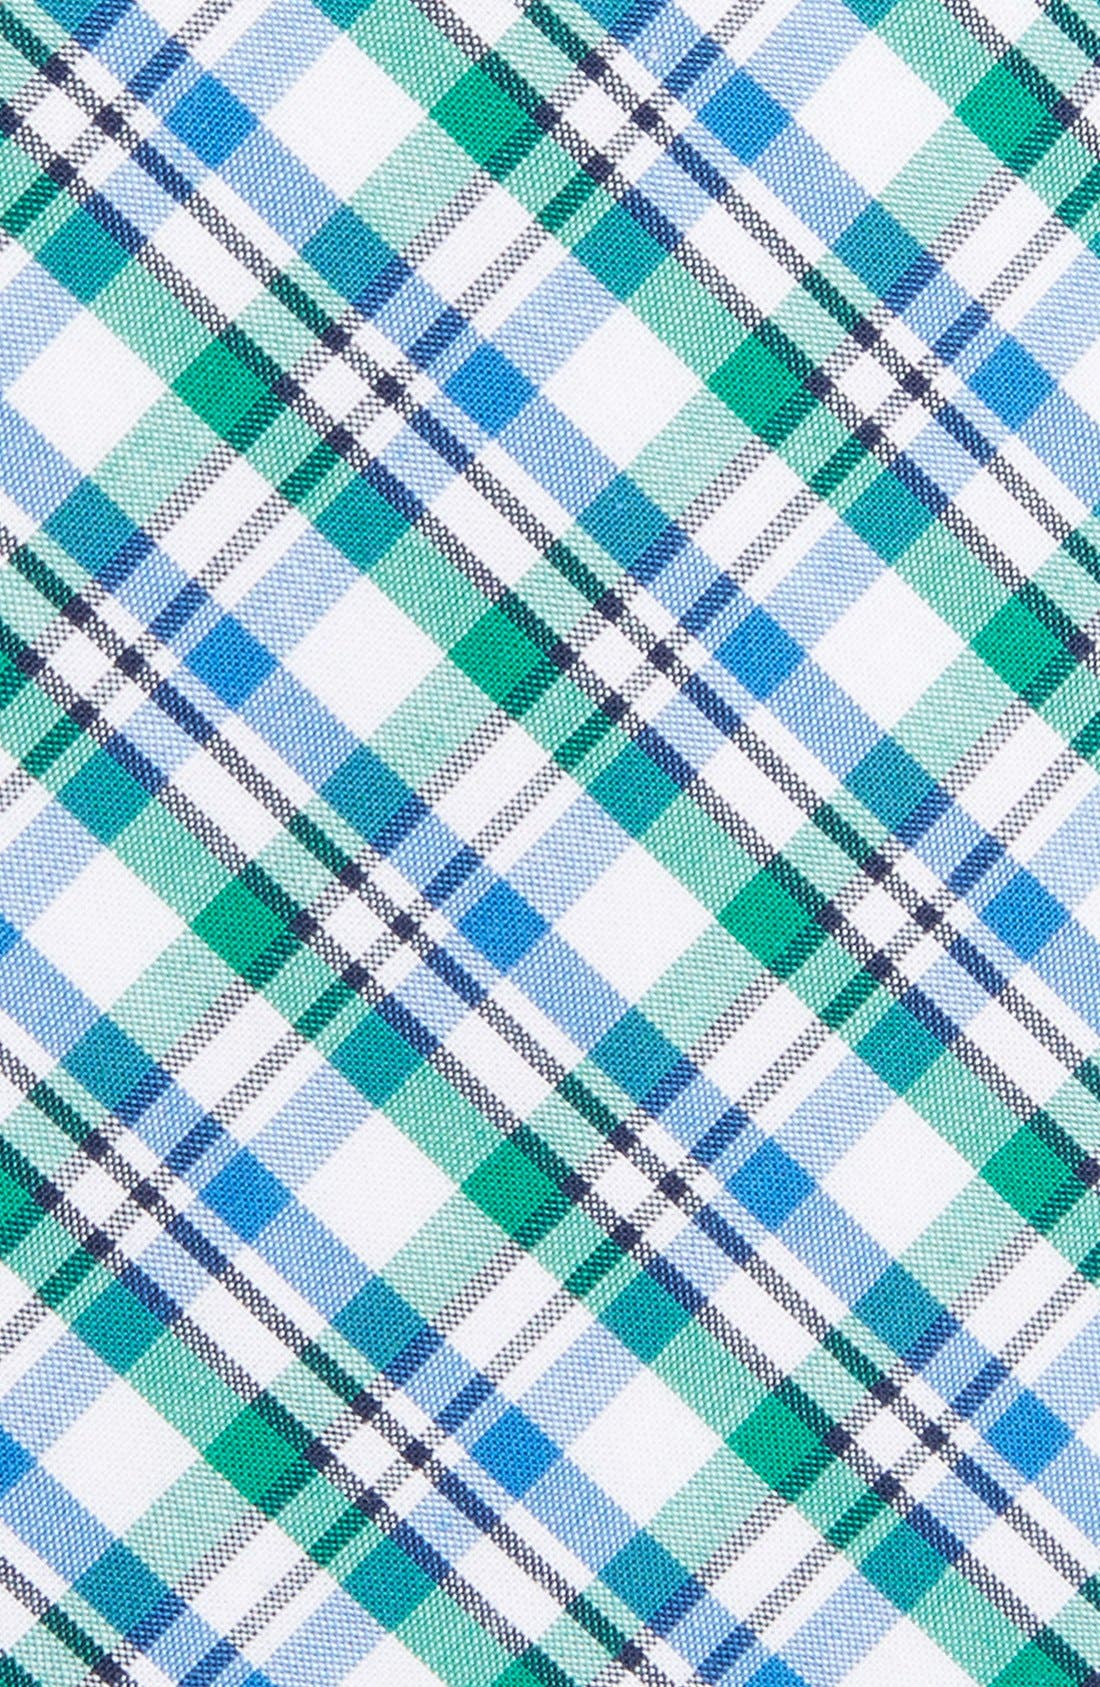 'Boomer' Plaid Cotton Tie,                             Alternate thumbnail 5, color,